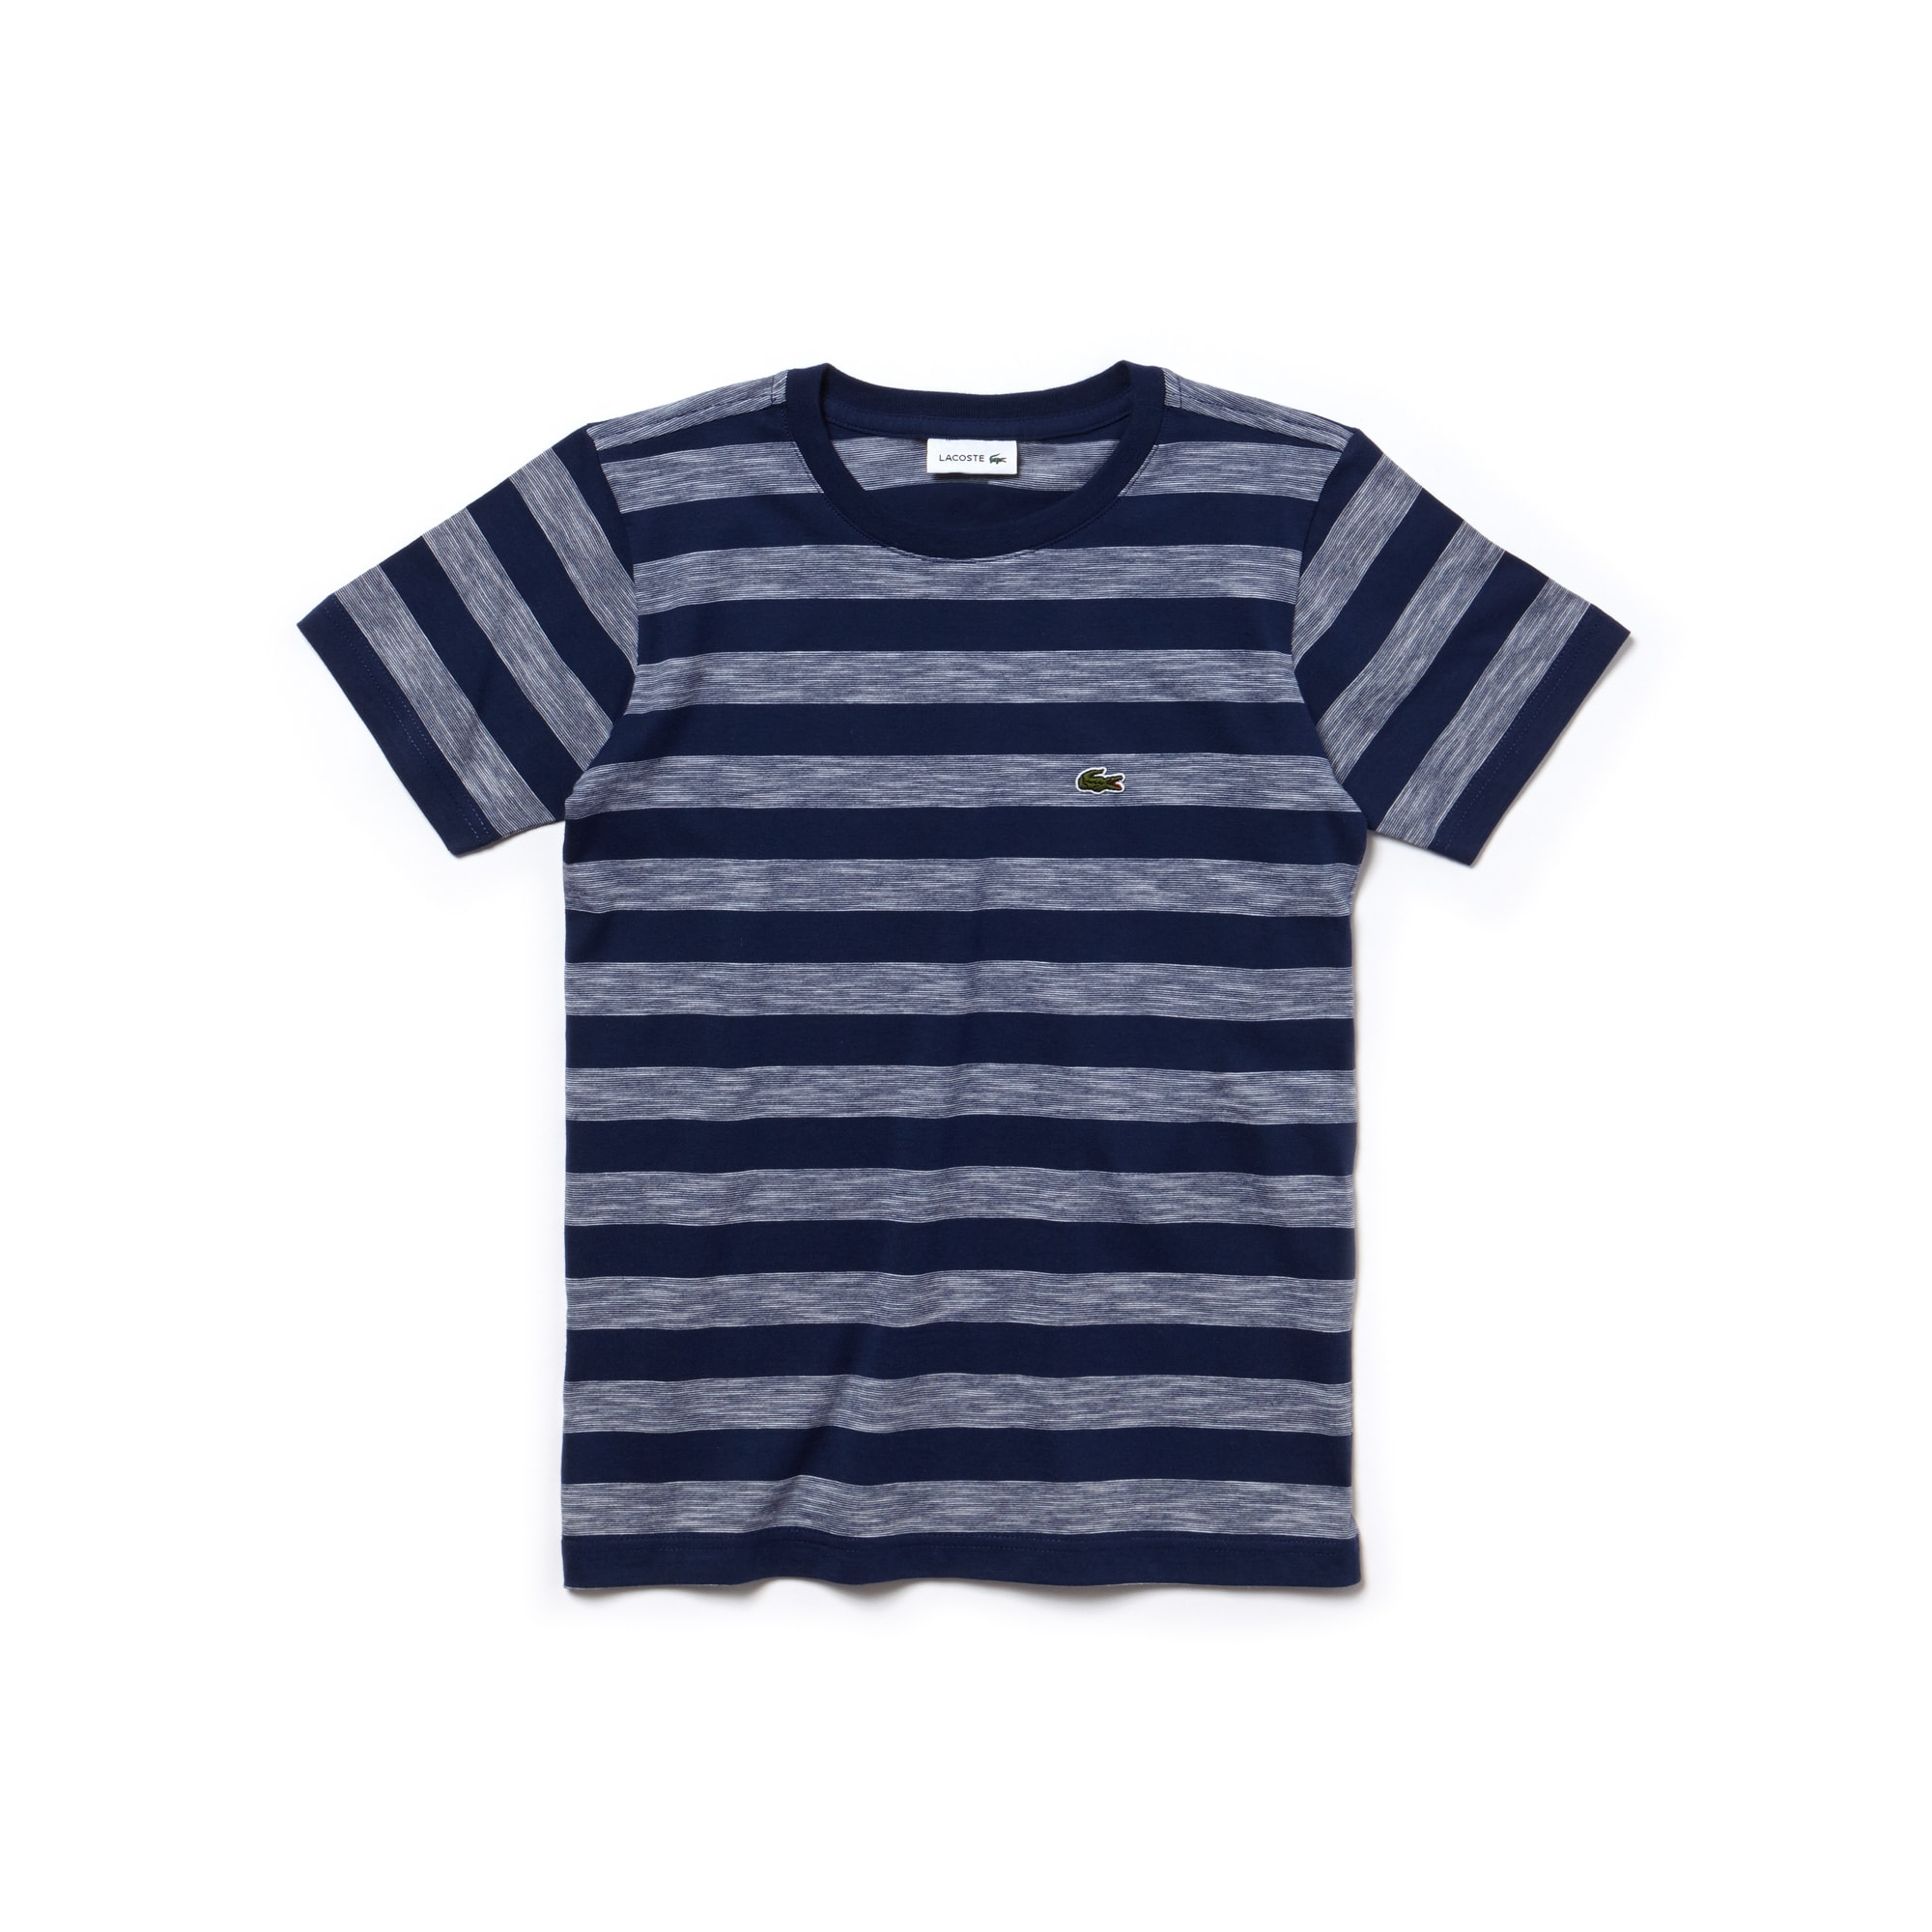 Boys' Crew Neck Striped Cotton Jersey T-shirt